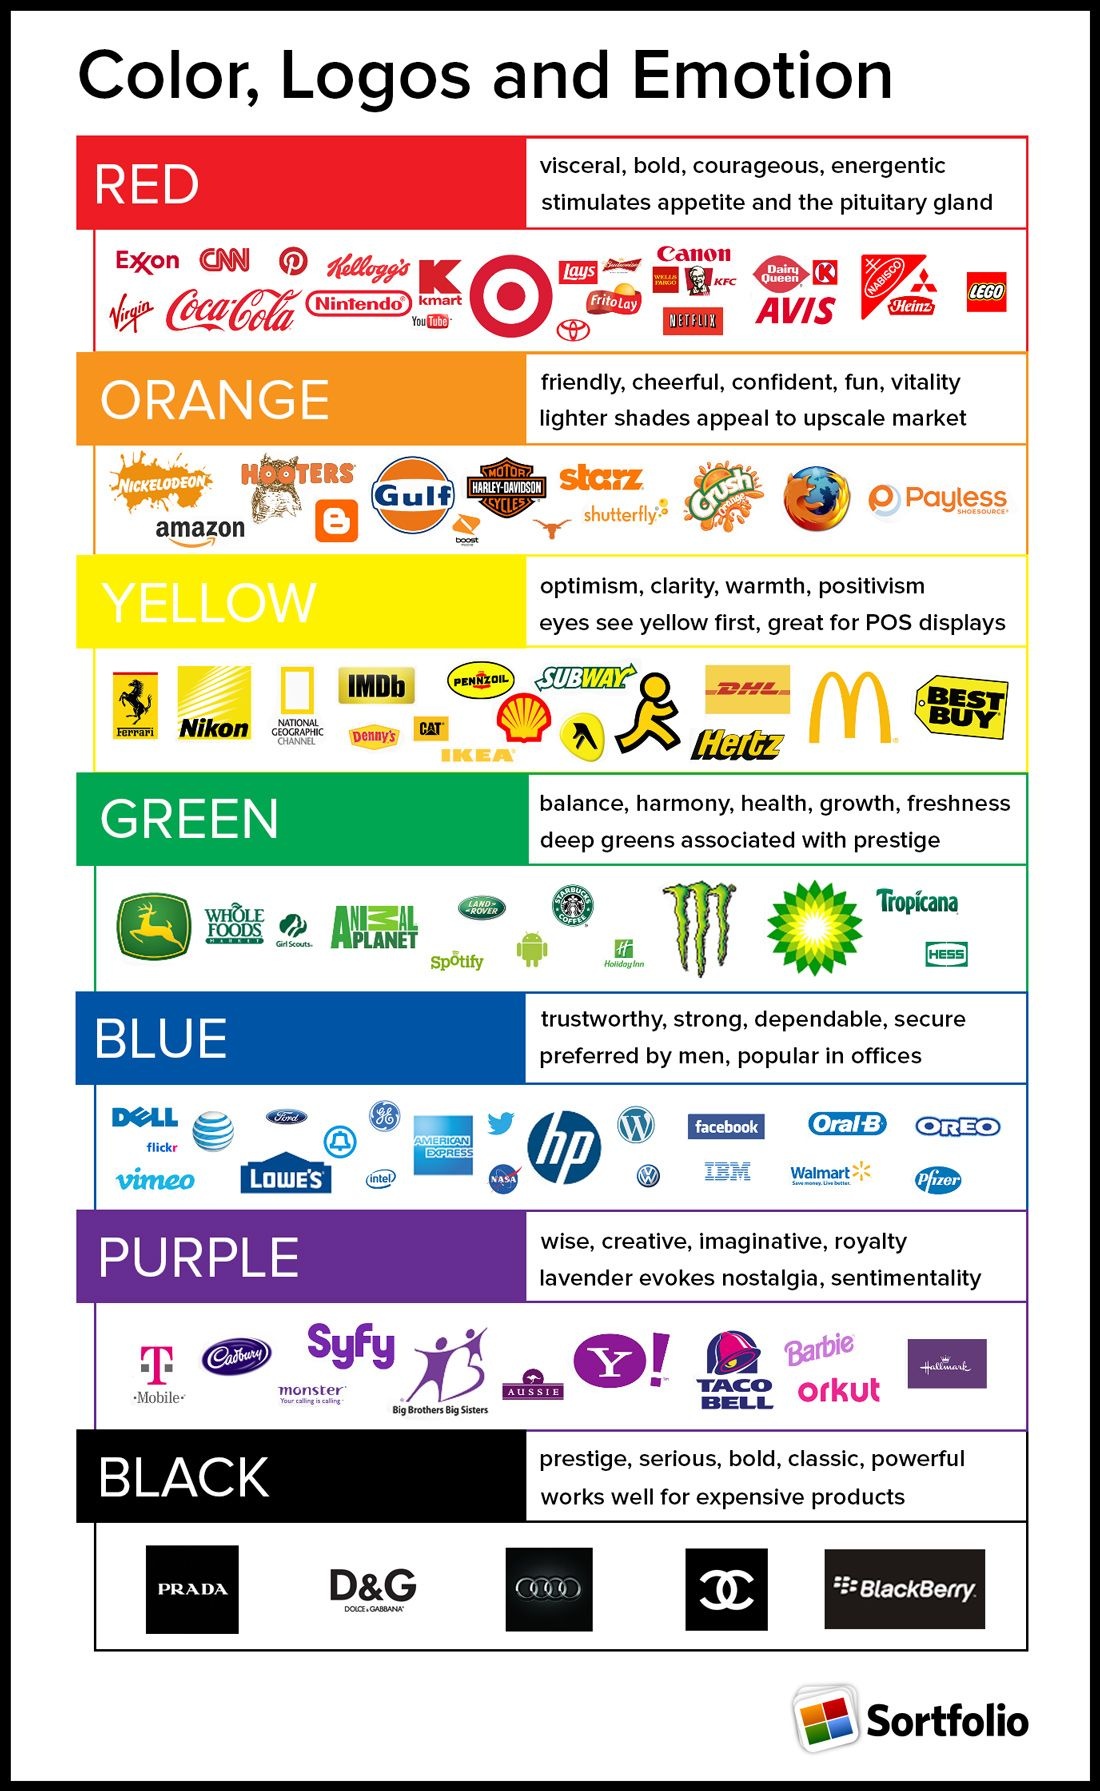 Colors Logos Emotions Id Info Color Pinterest